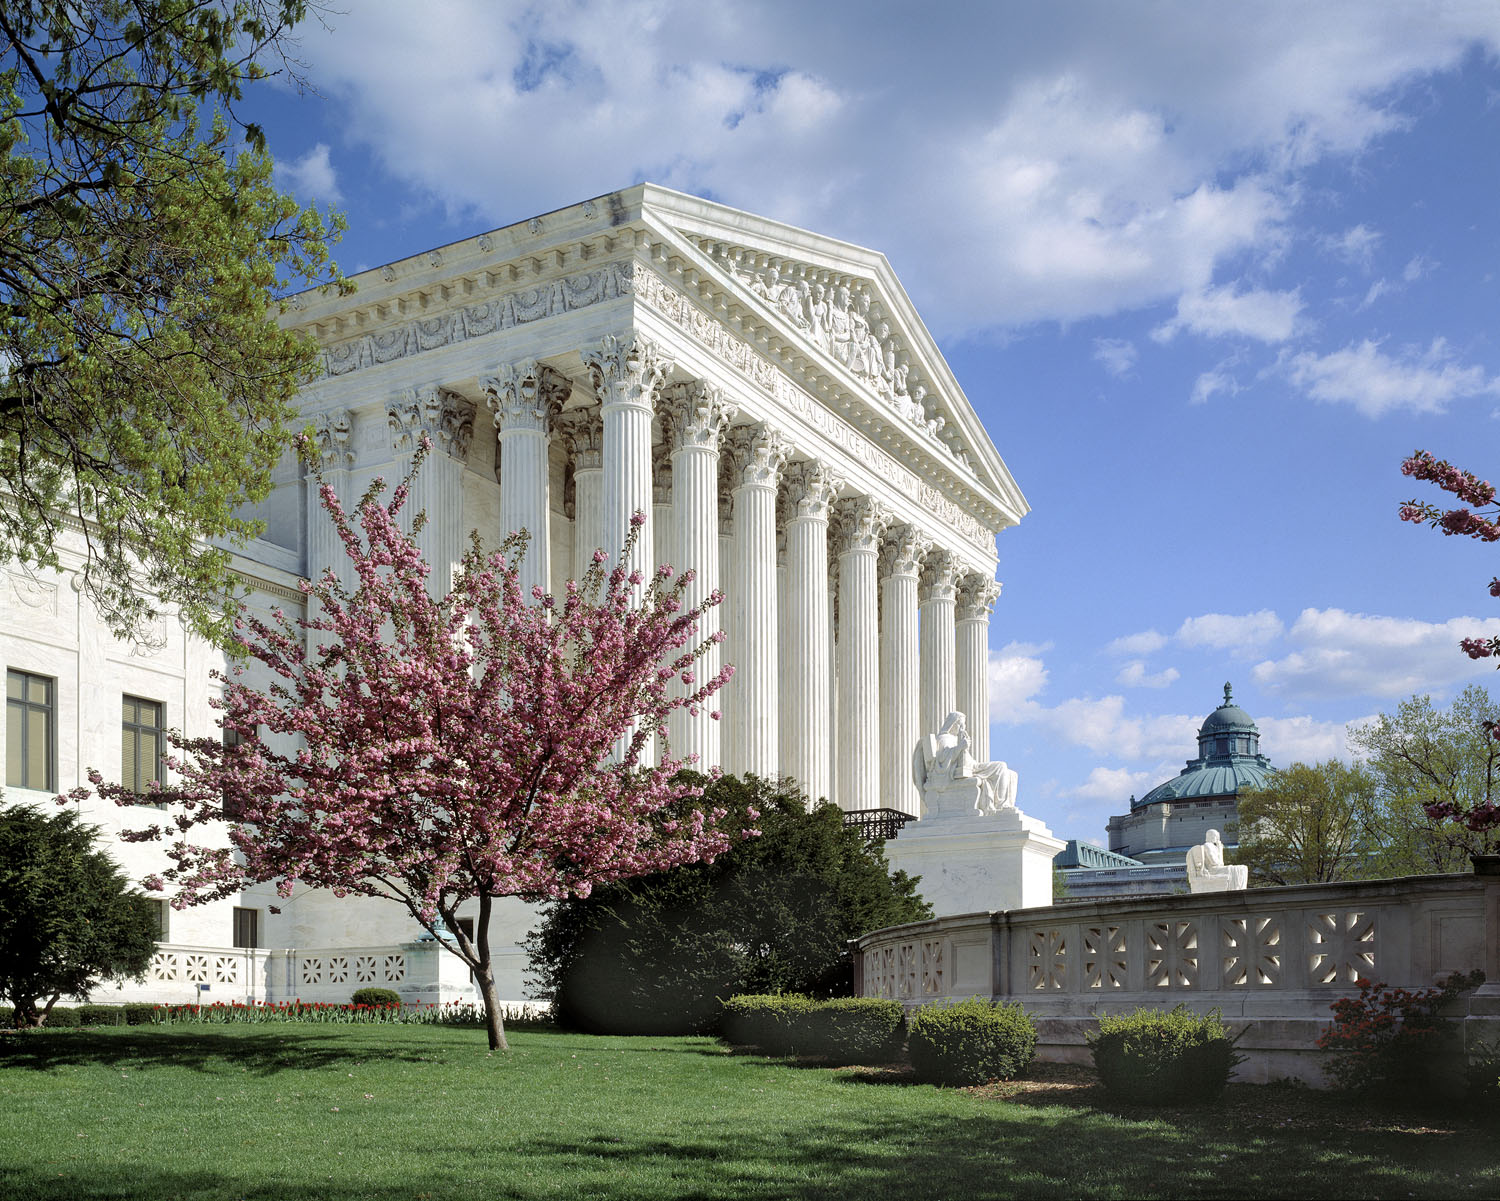 The United States Supreme Court with a cherry blossom tree in the foreground